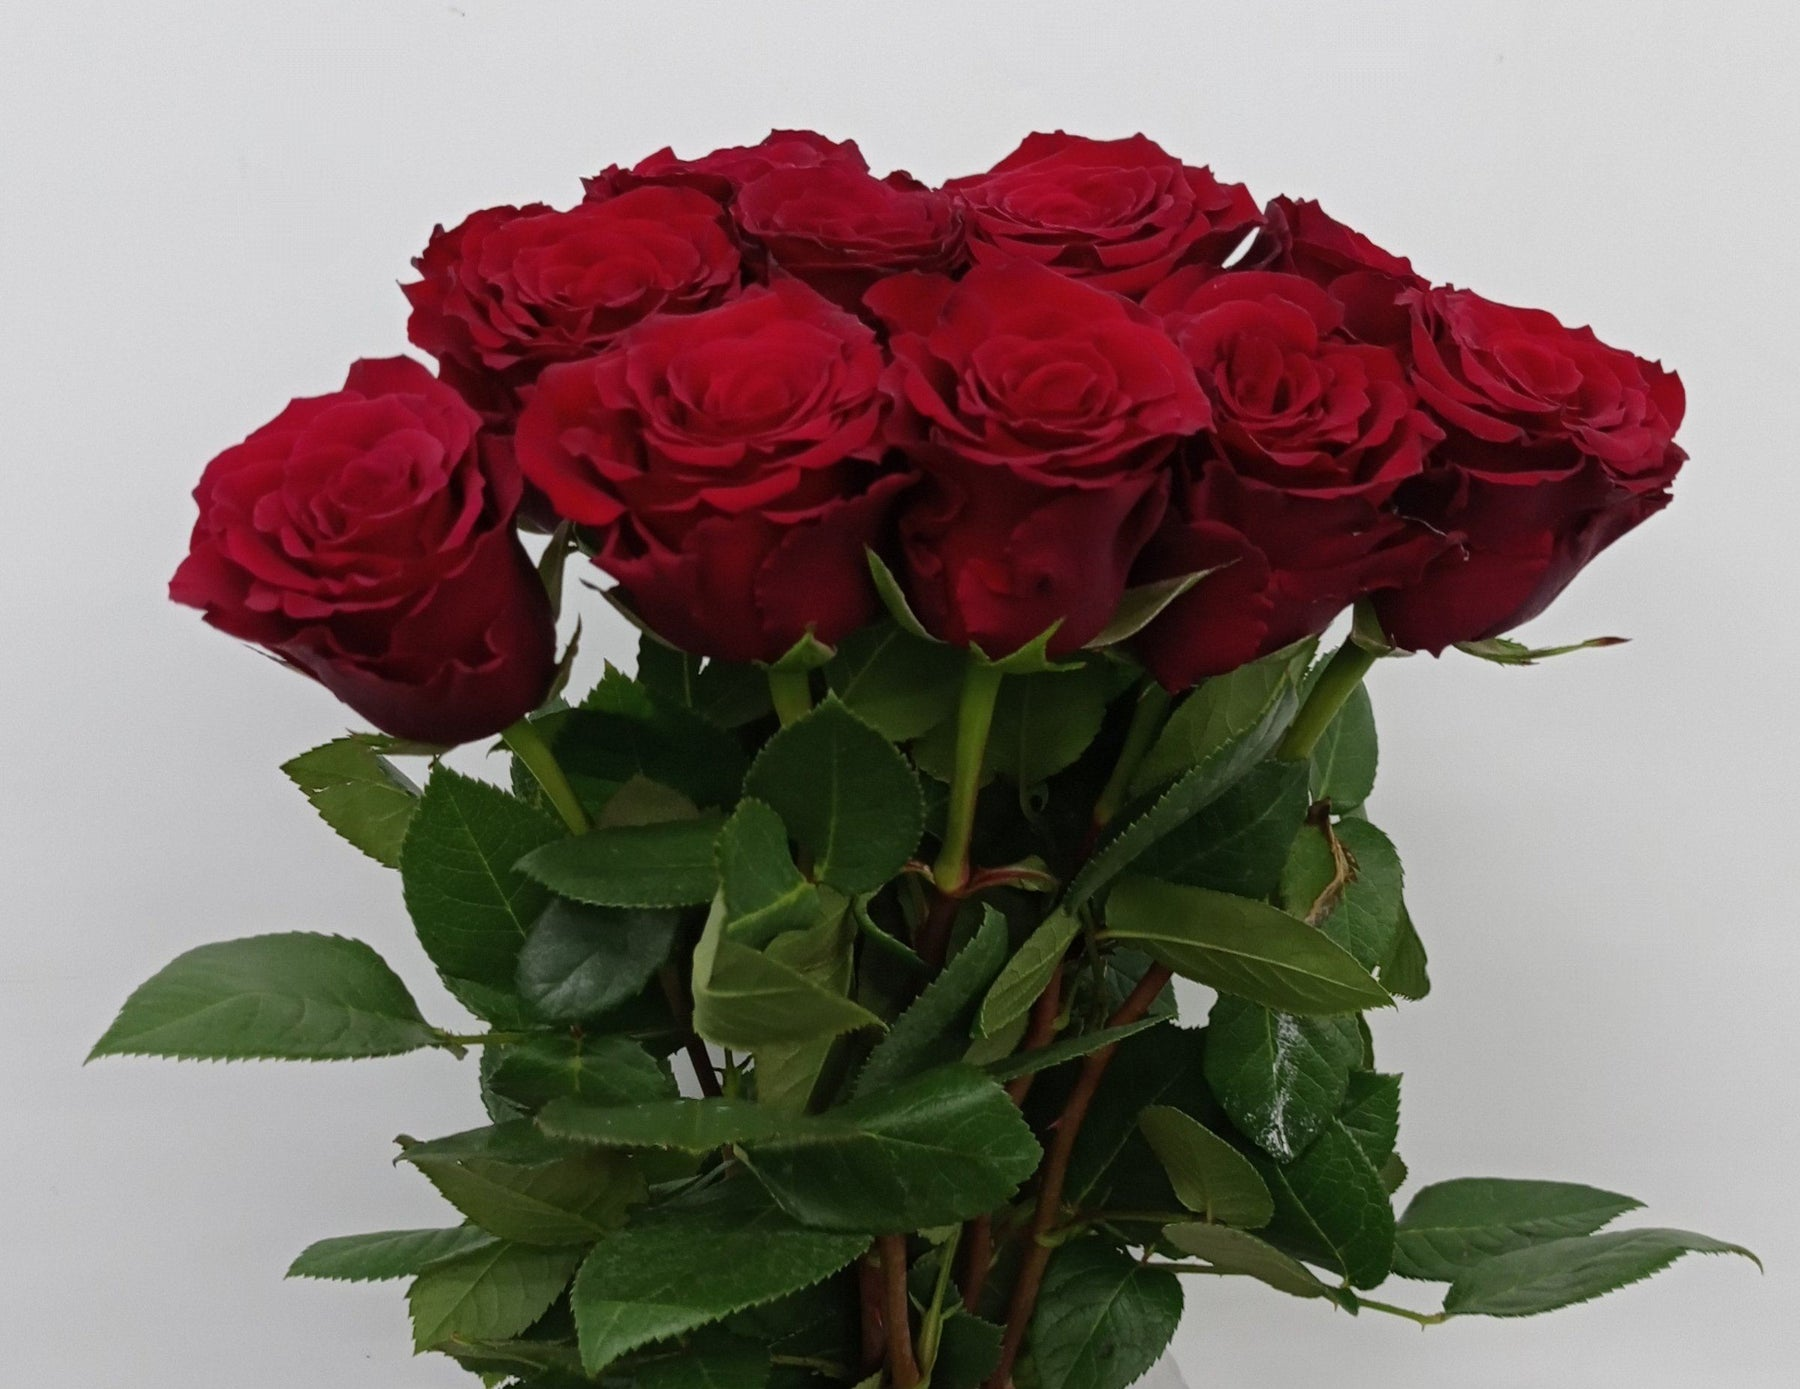 Rose (Et) 50cm (Imported) - Red